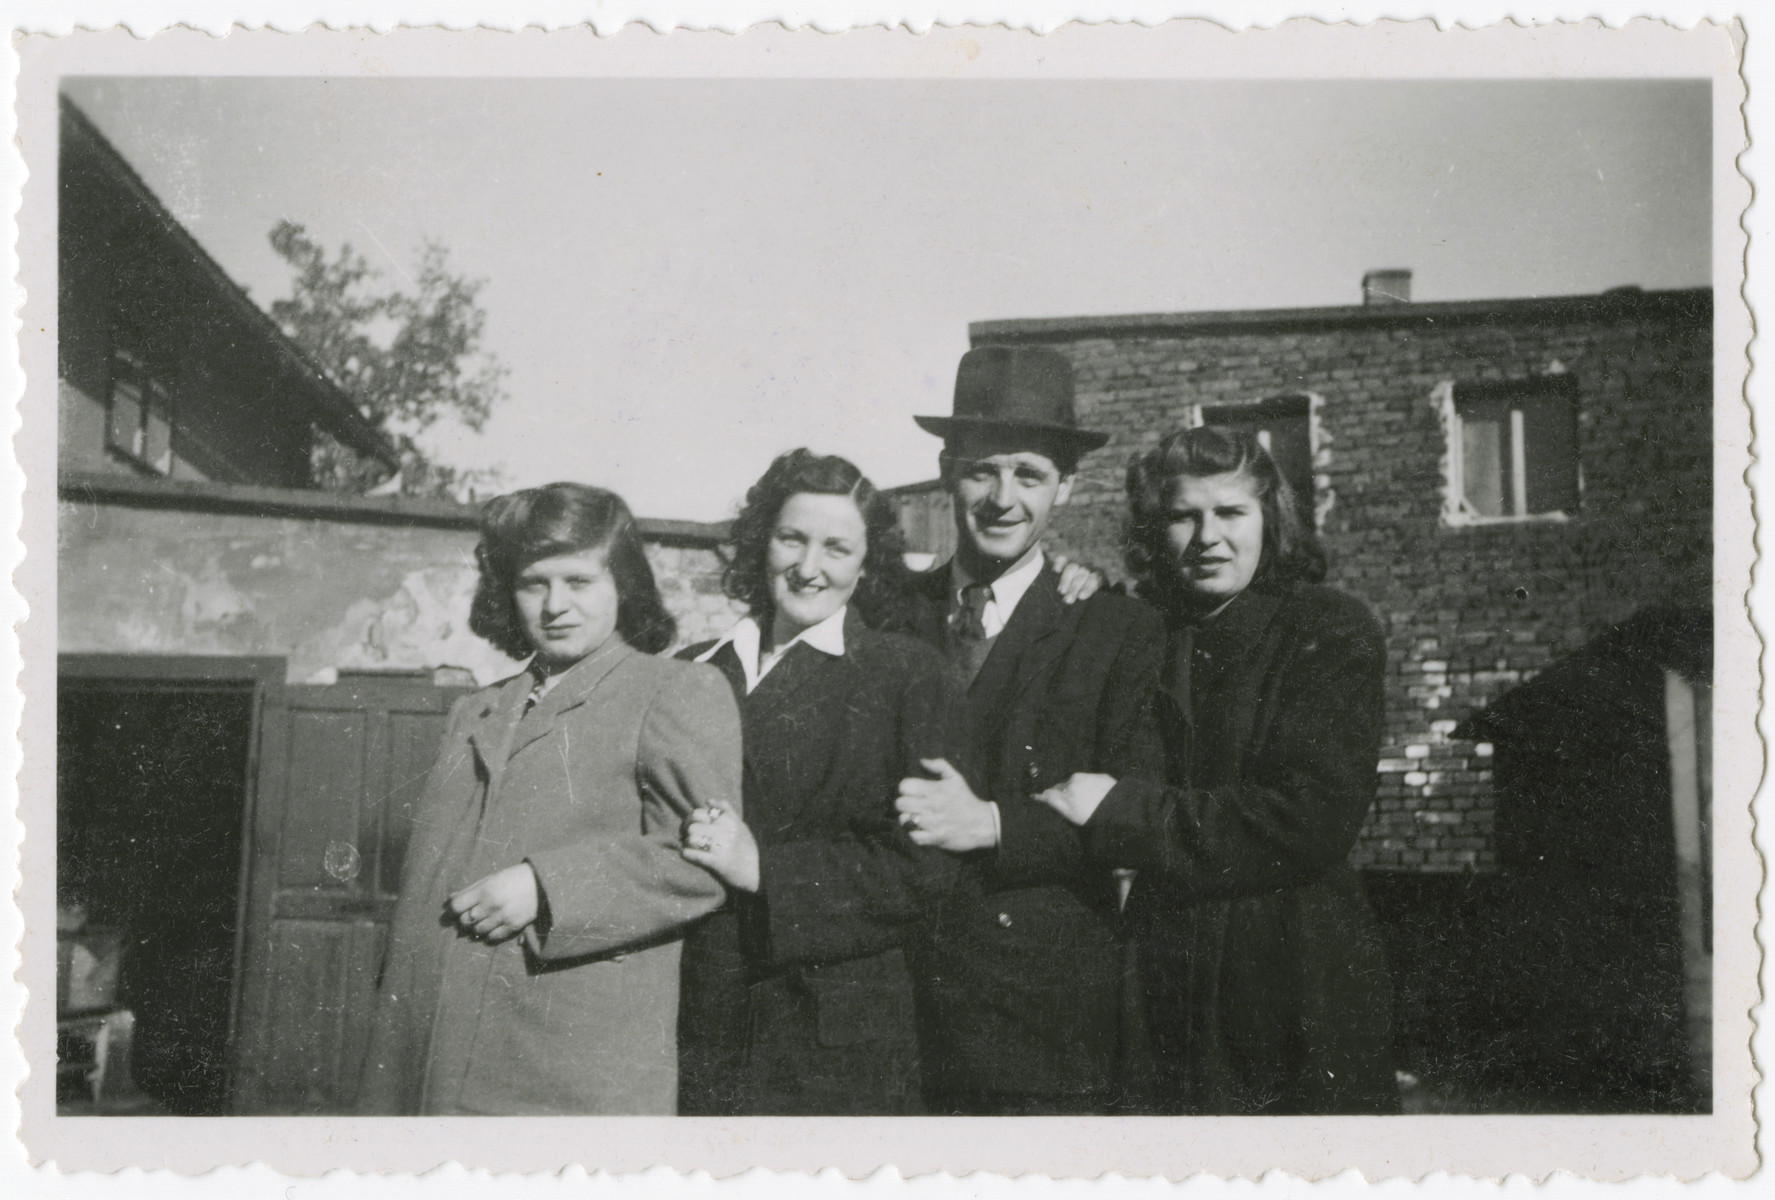 Four cousins pose togther in Kusnice prior to the German invasion.  From left to right are Helena, Esti, Bernard and Ruth.  Helena and Ruth were the sisters of Eva Weinberger.  Bernard was their cousin, and Esti was Bernard's future wife.  All four survived the Holocaust.  Bernard and Esti later immigrated to Bolivia.